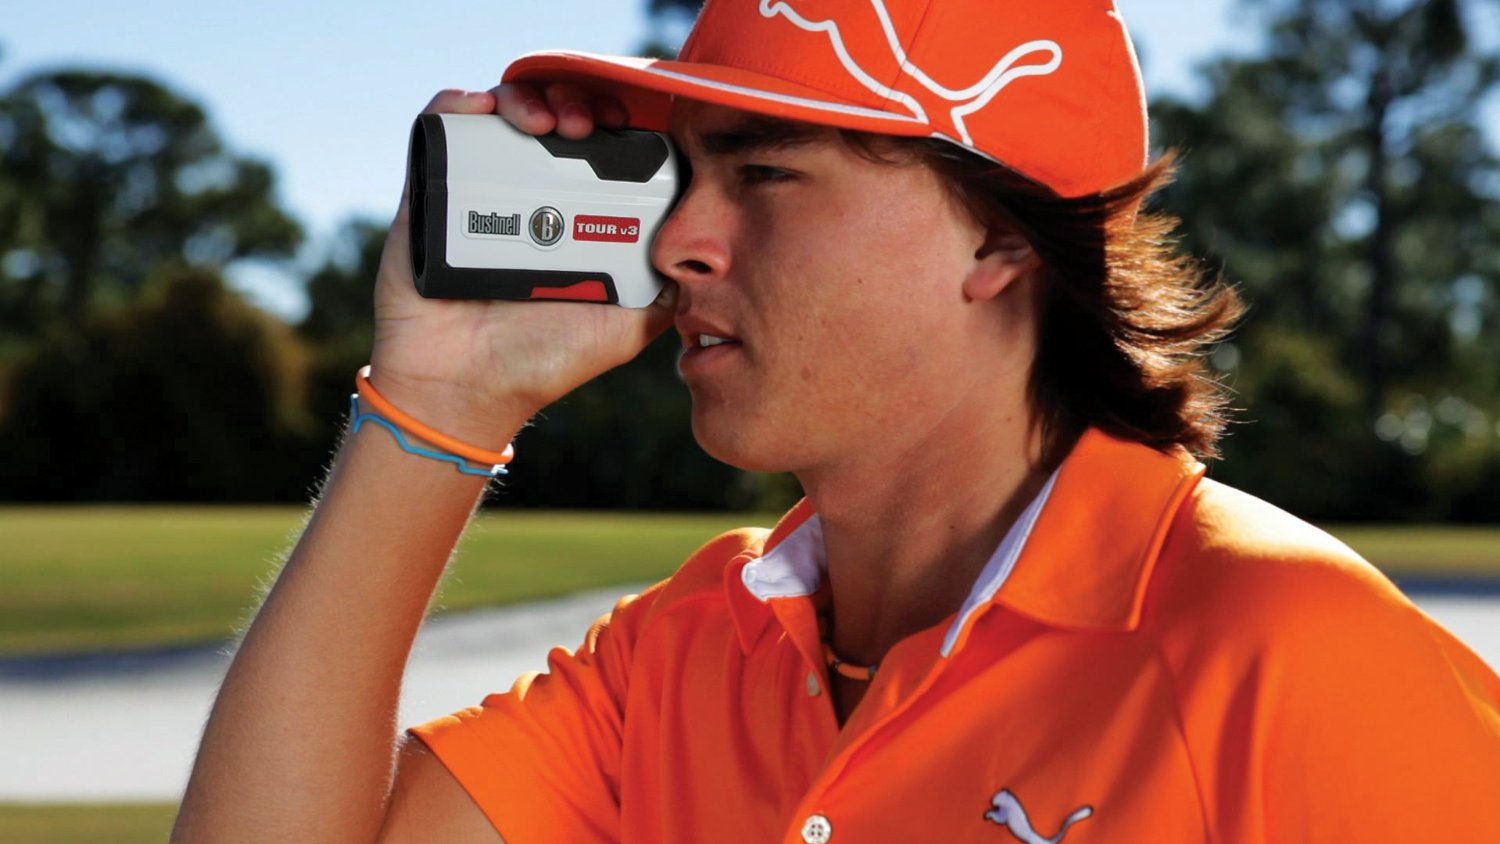 Avoid mistakes when buying a rangefinder